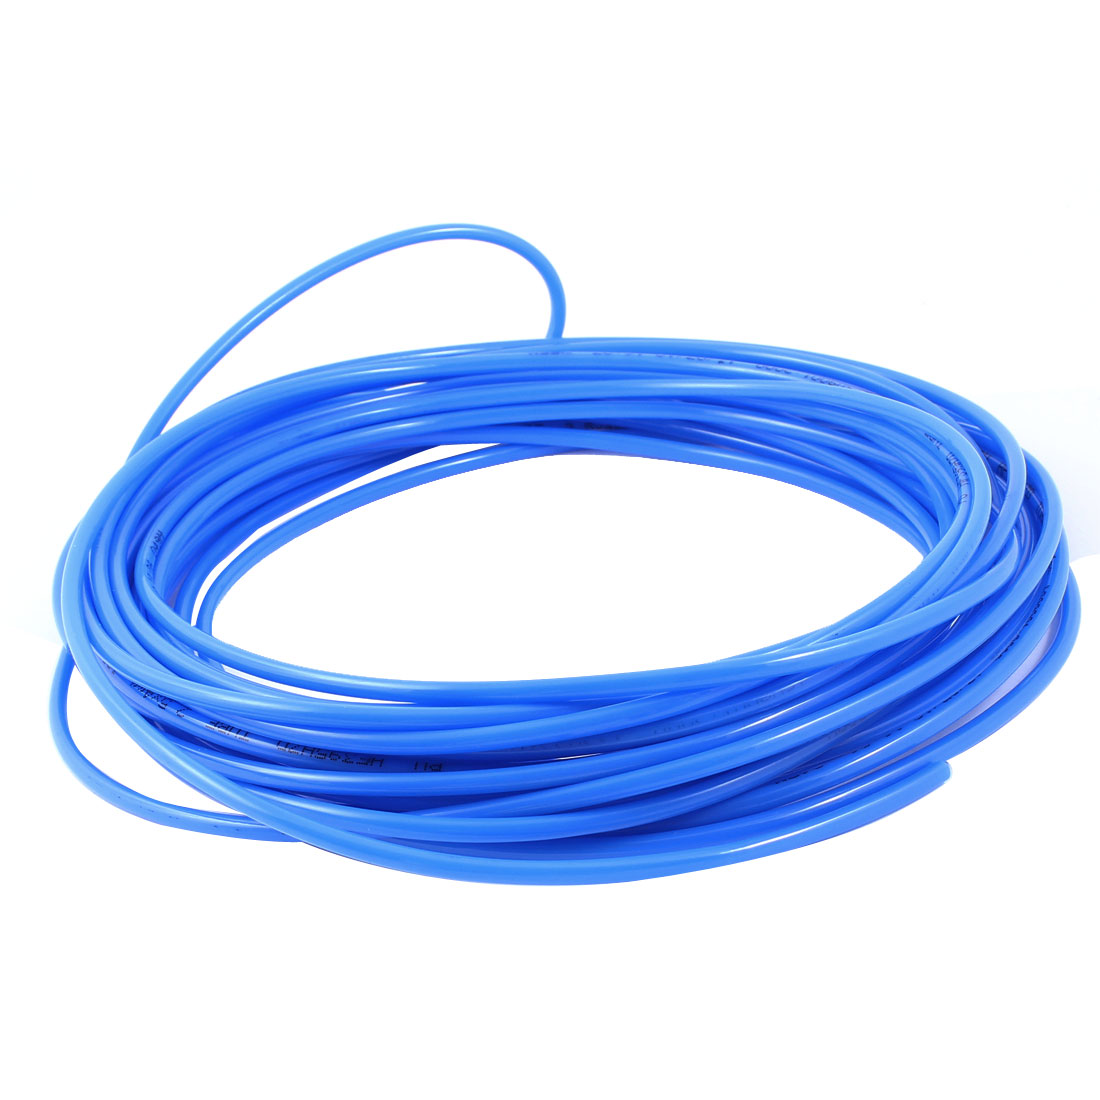 12M 39Ft Length 4mm x 2.5mm Size Pneumatic Air PU Hose Pipe Tube Blue